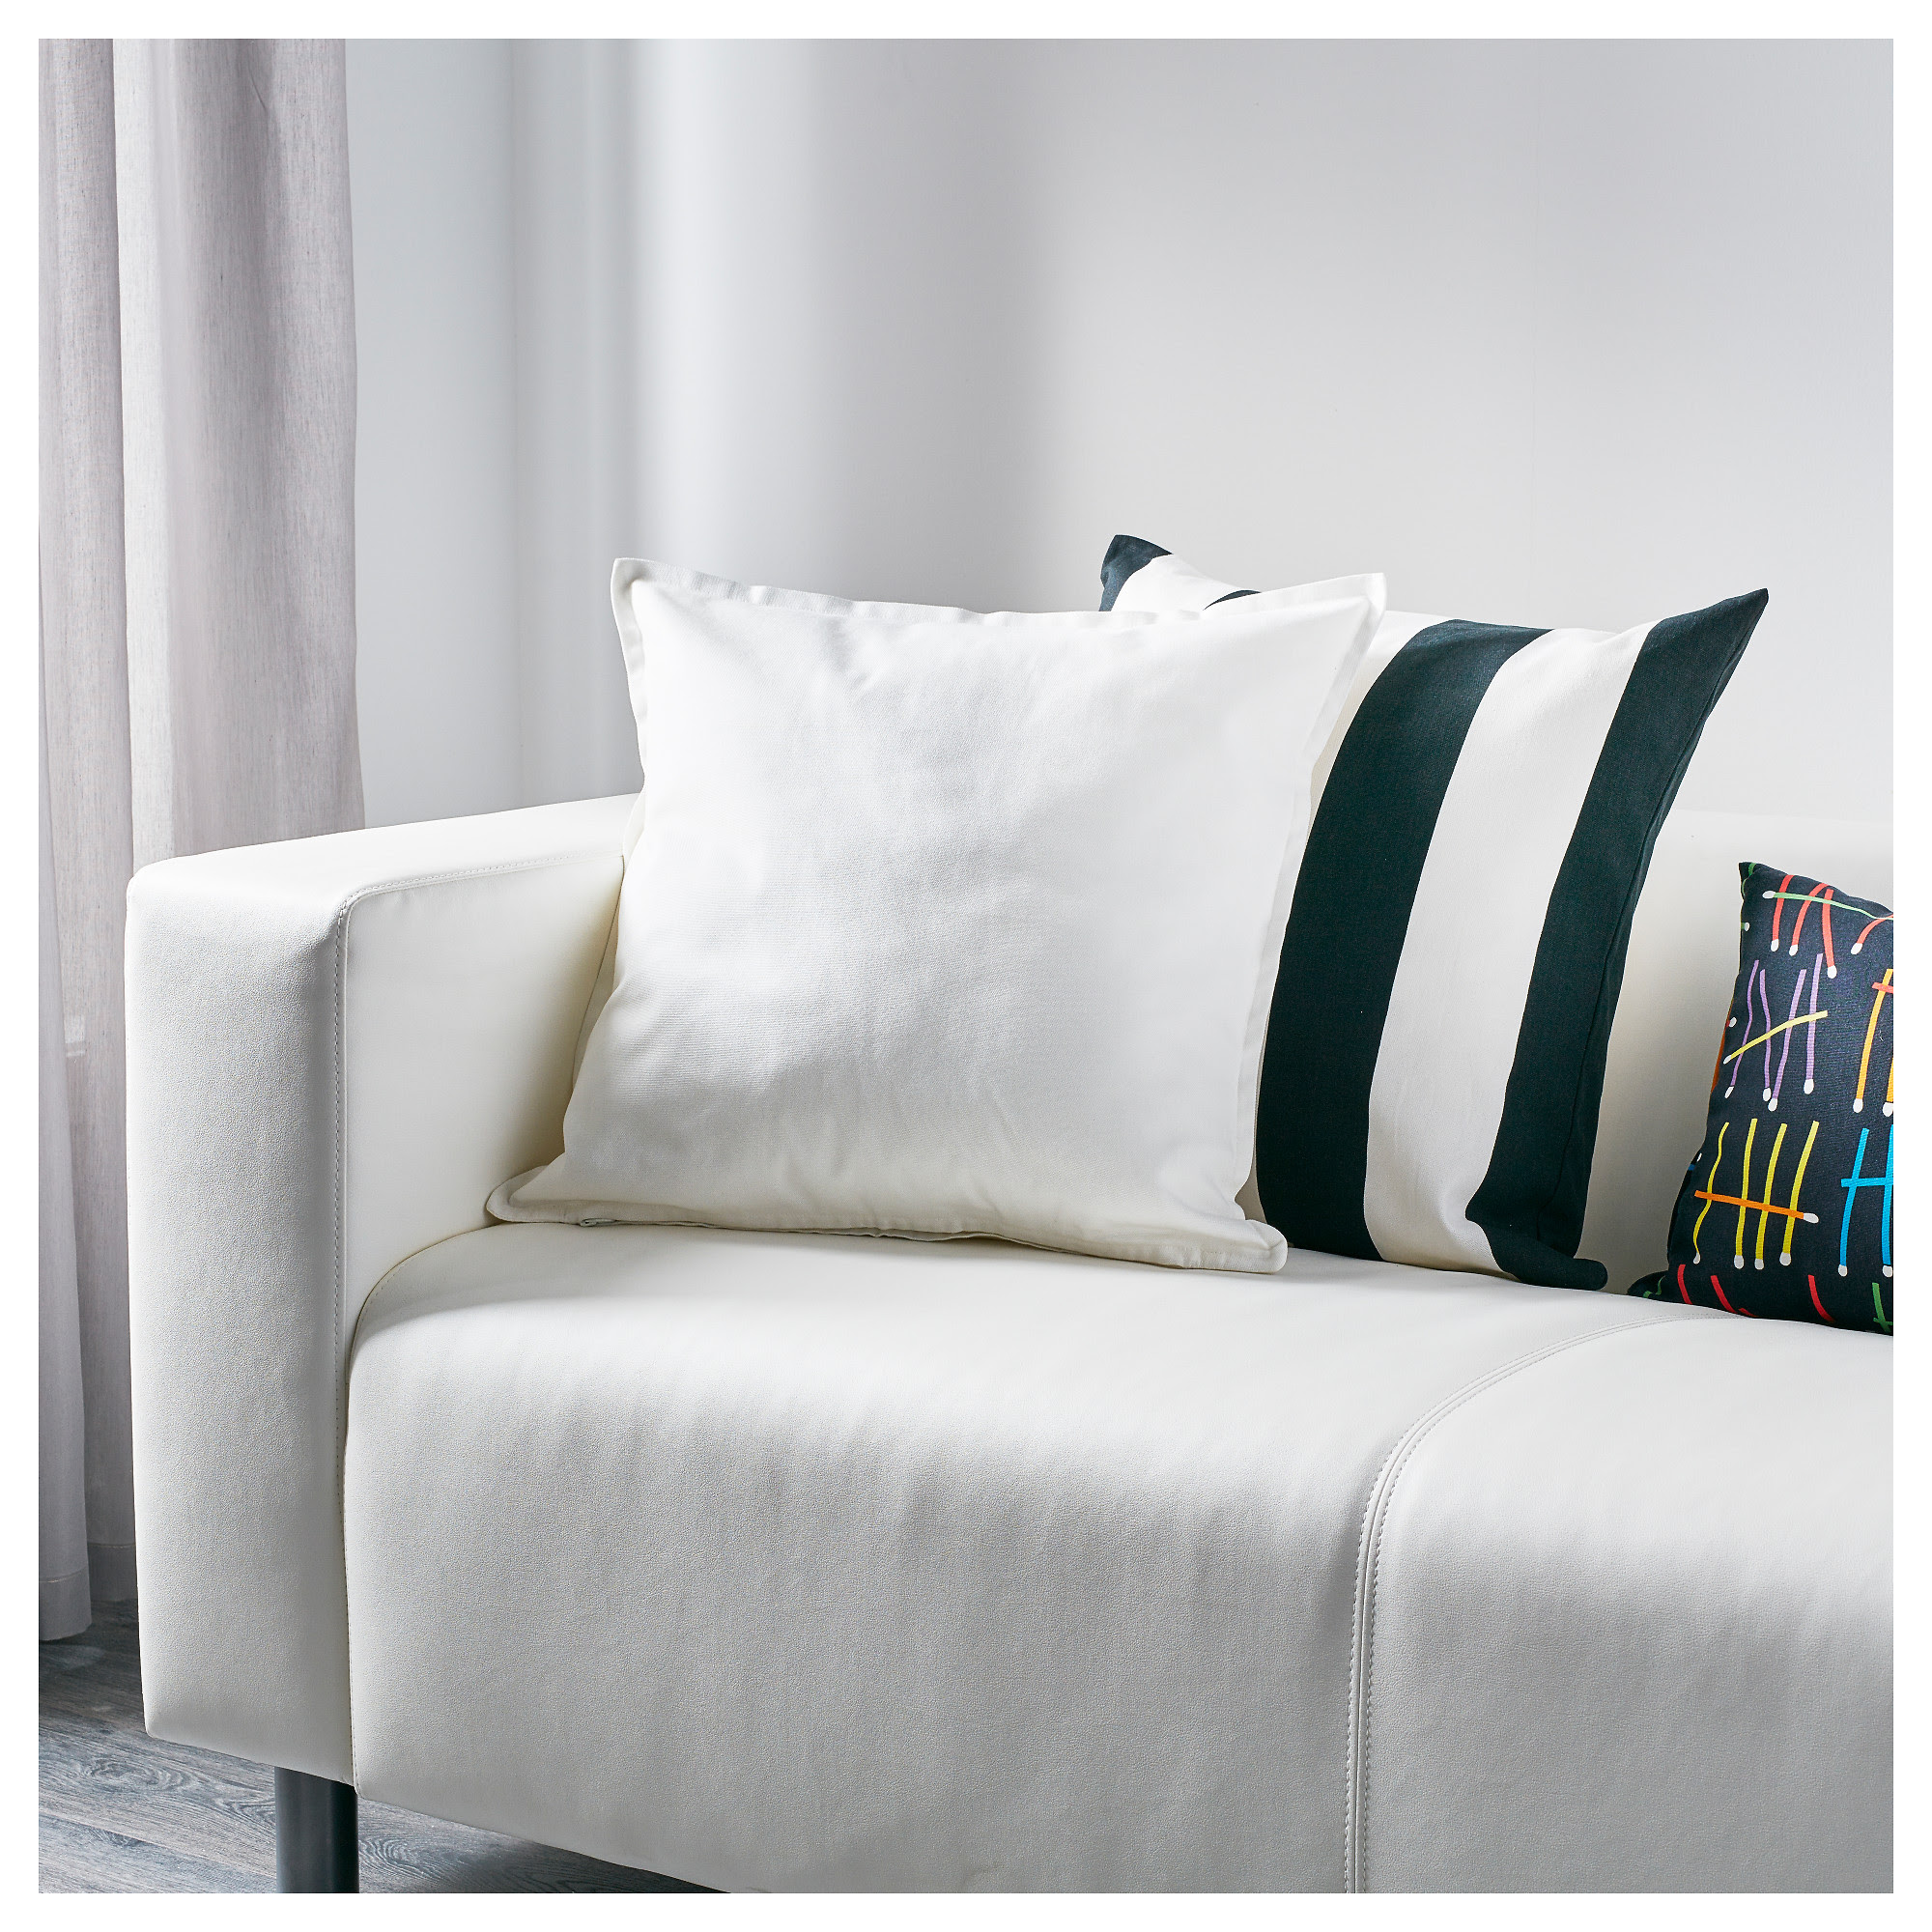 Ikea Sofa Cushion Covers